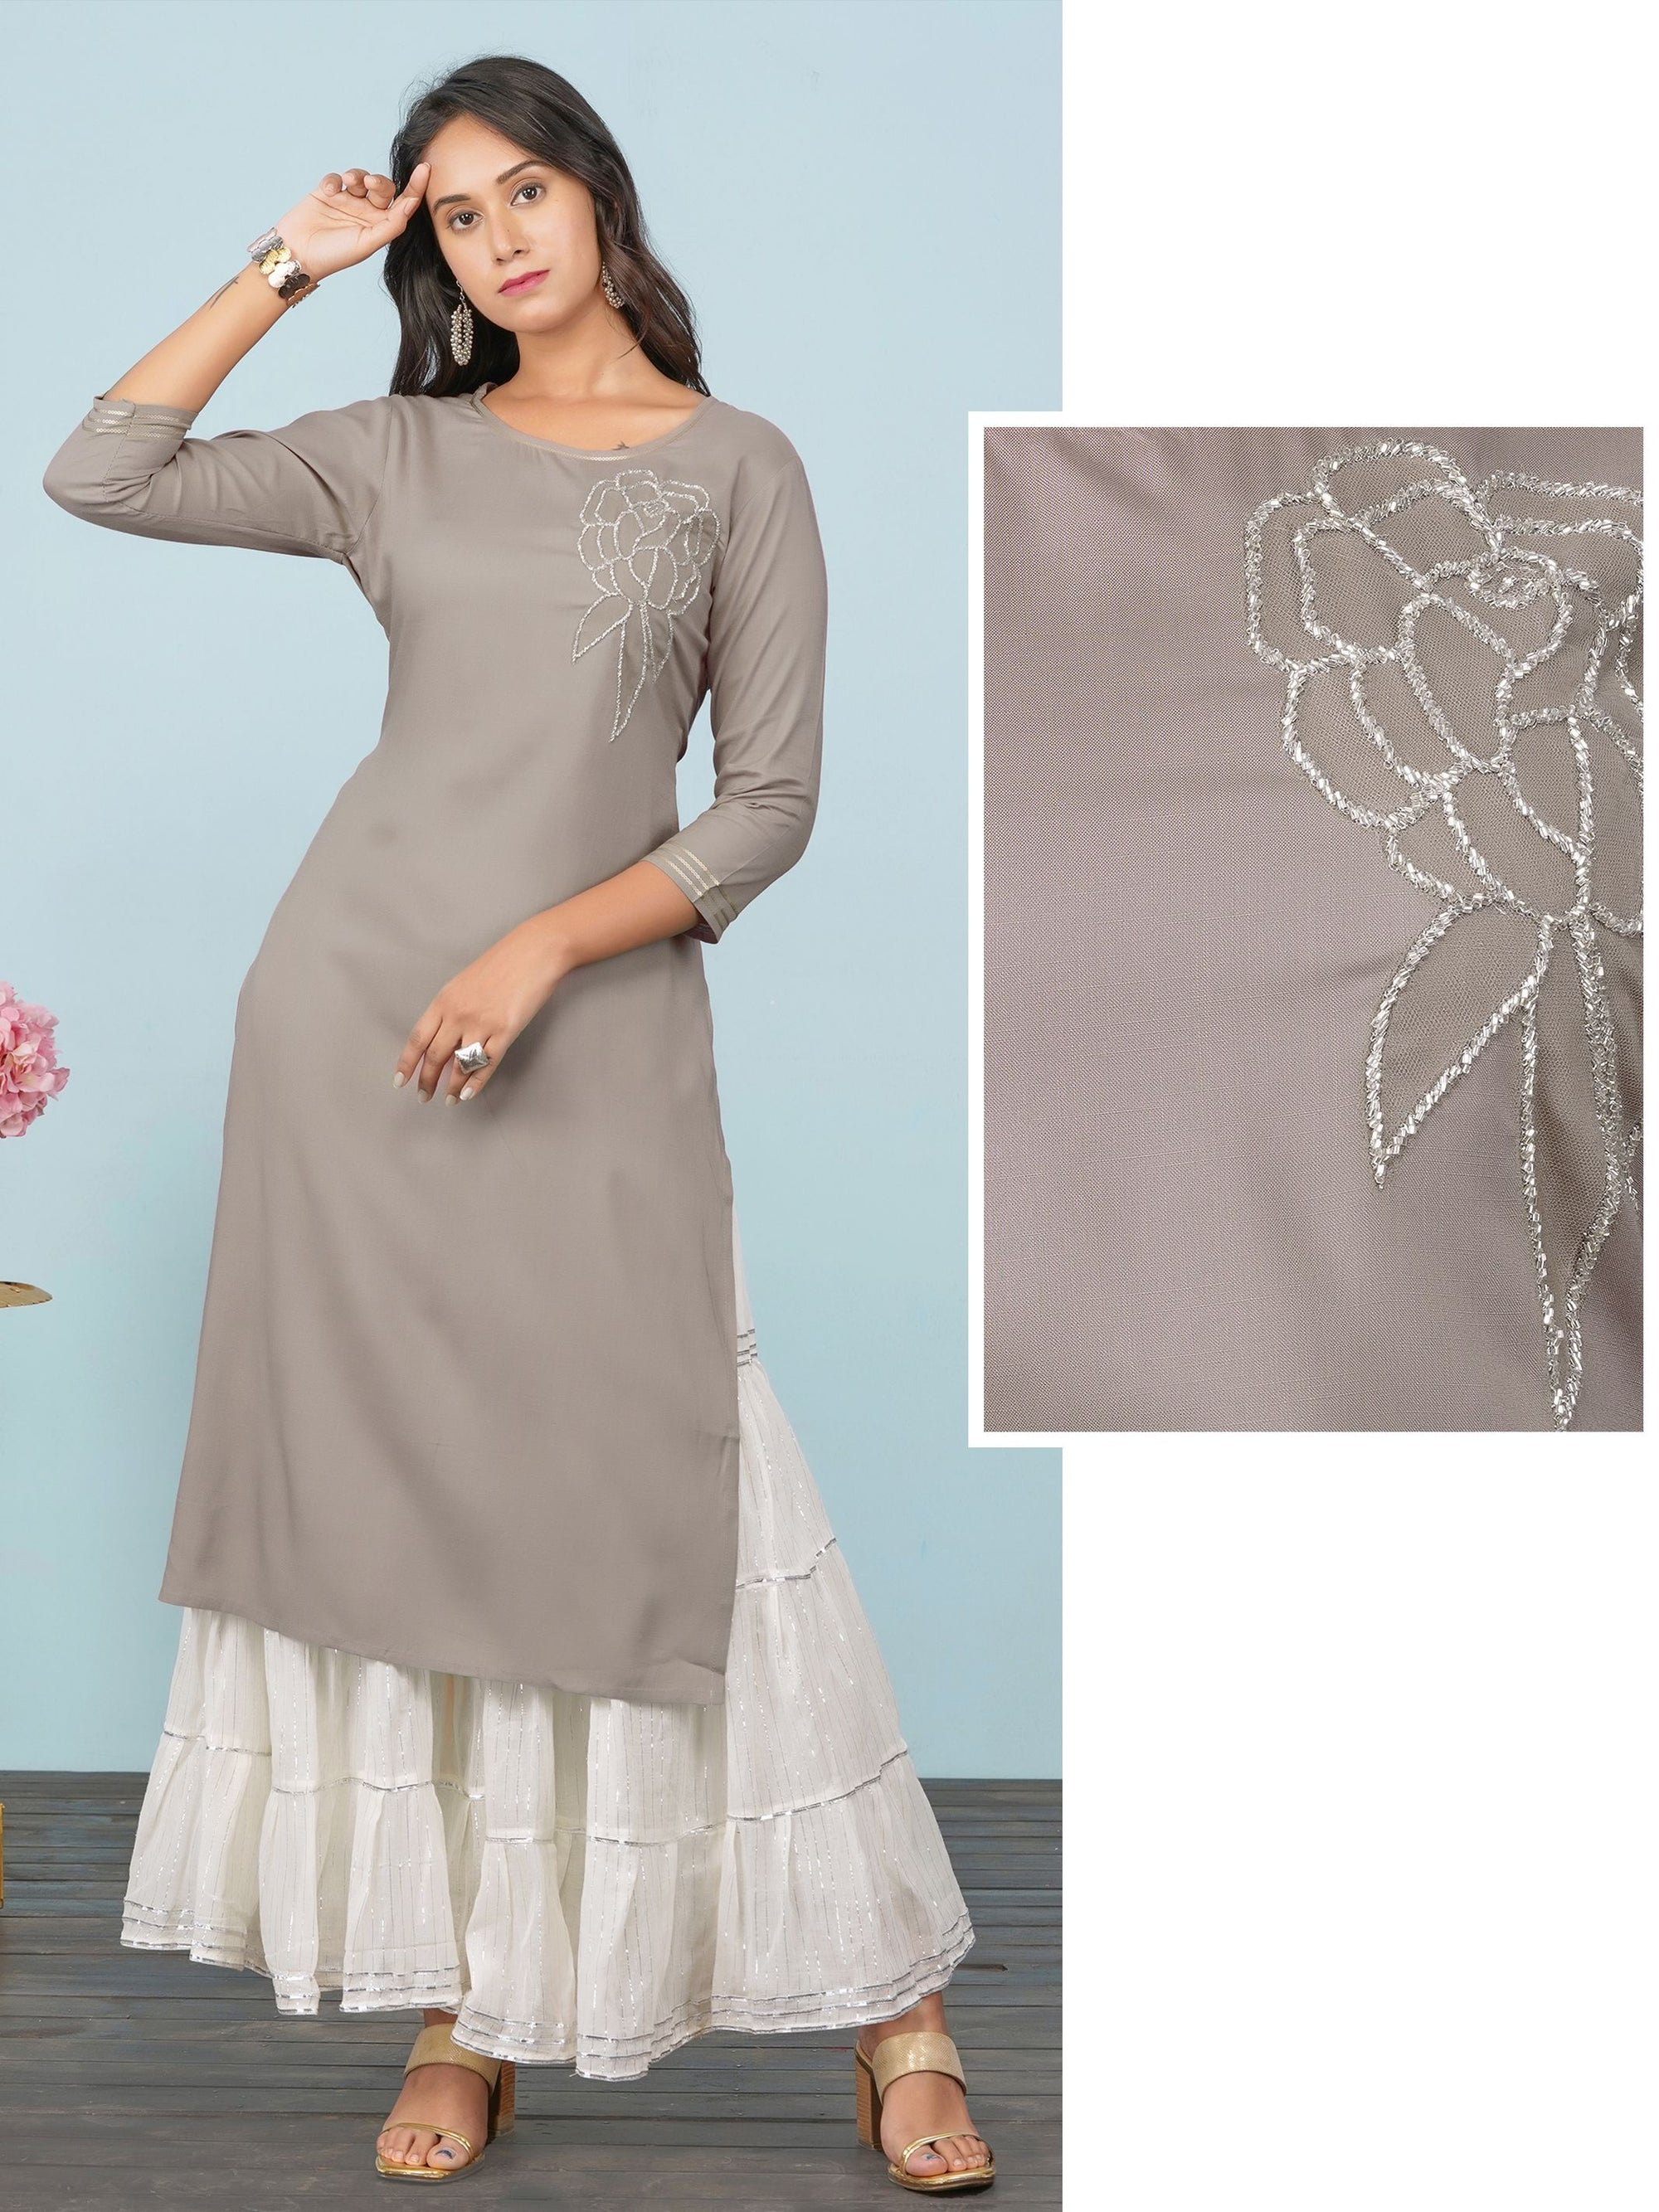 Cutdana Embellished Cotton Kurti – Fawn Brown